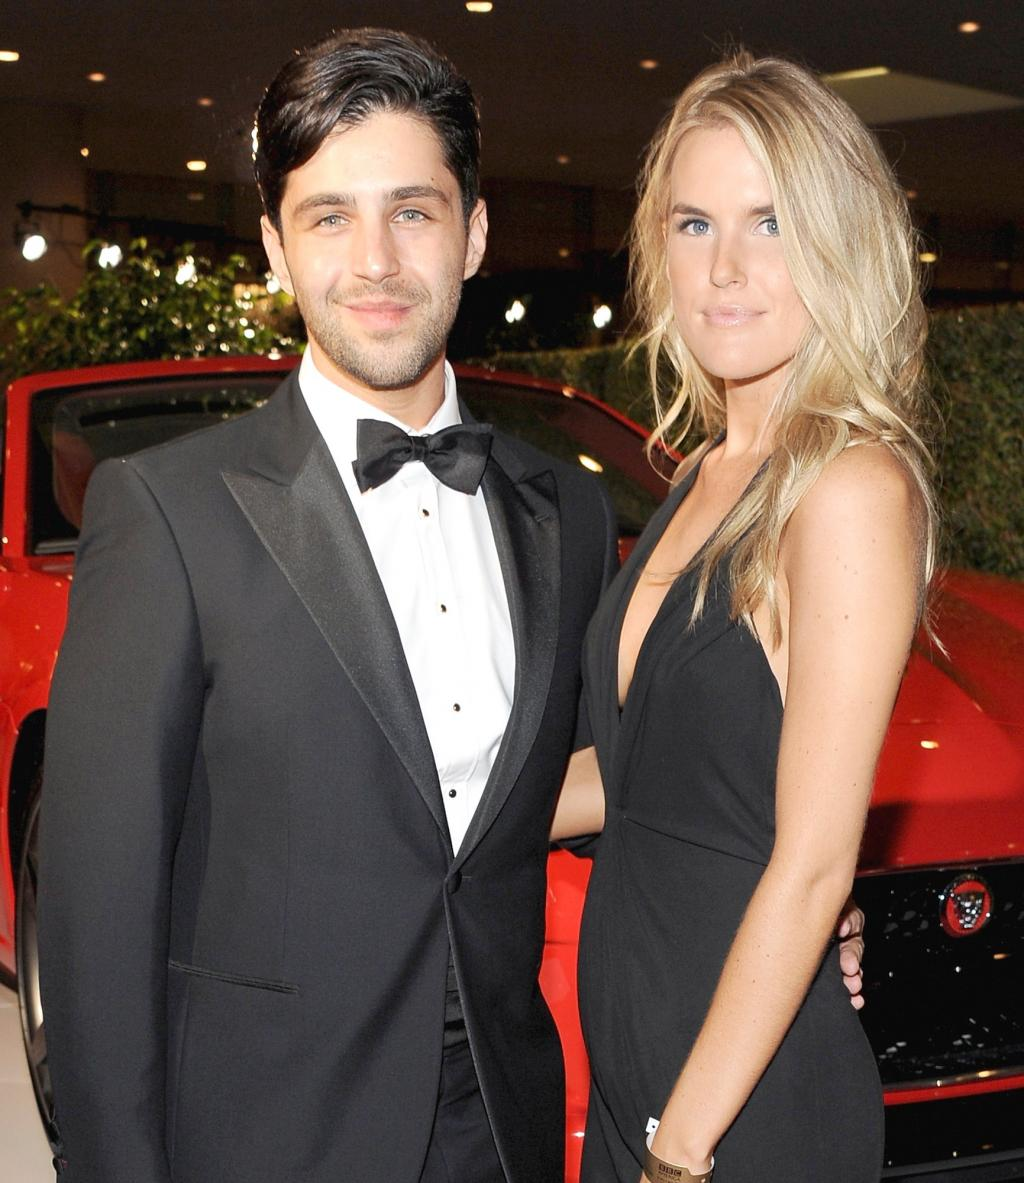 Drake & Josh Star Josh Peck Marries Paige O'Brien   '  and John Stamos Was There to Take It All In